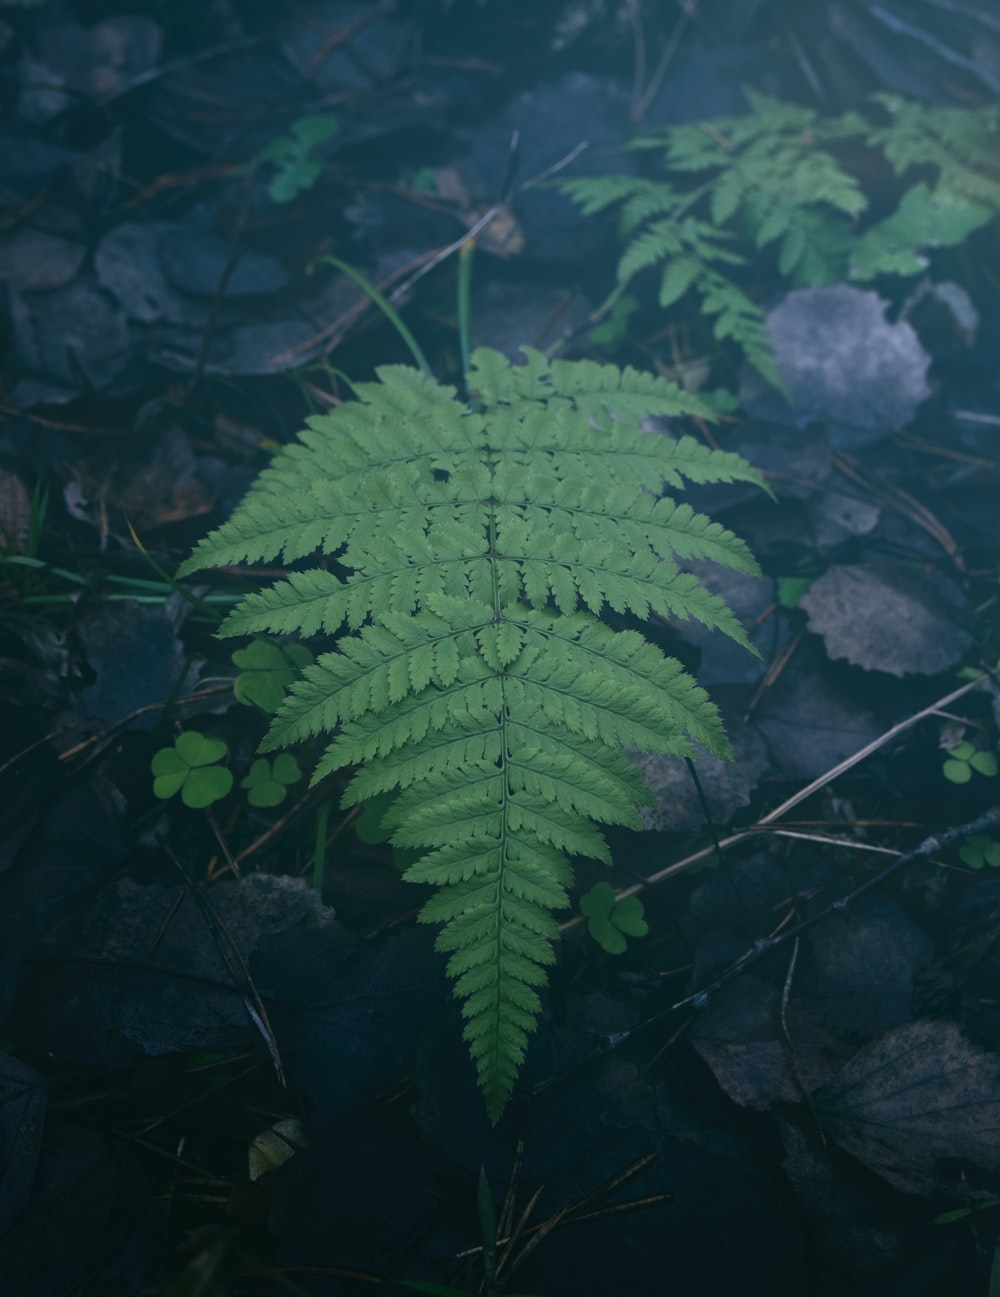 shallow focus photo of fern leaves